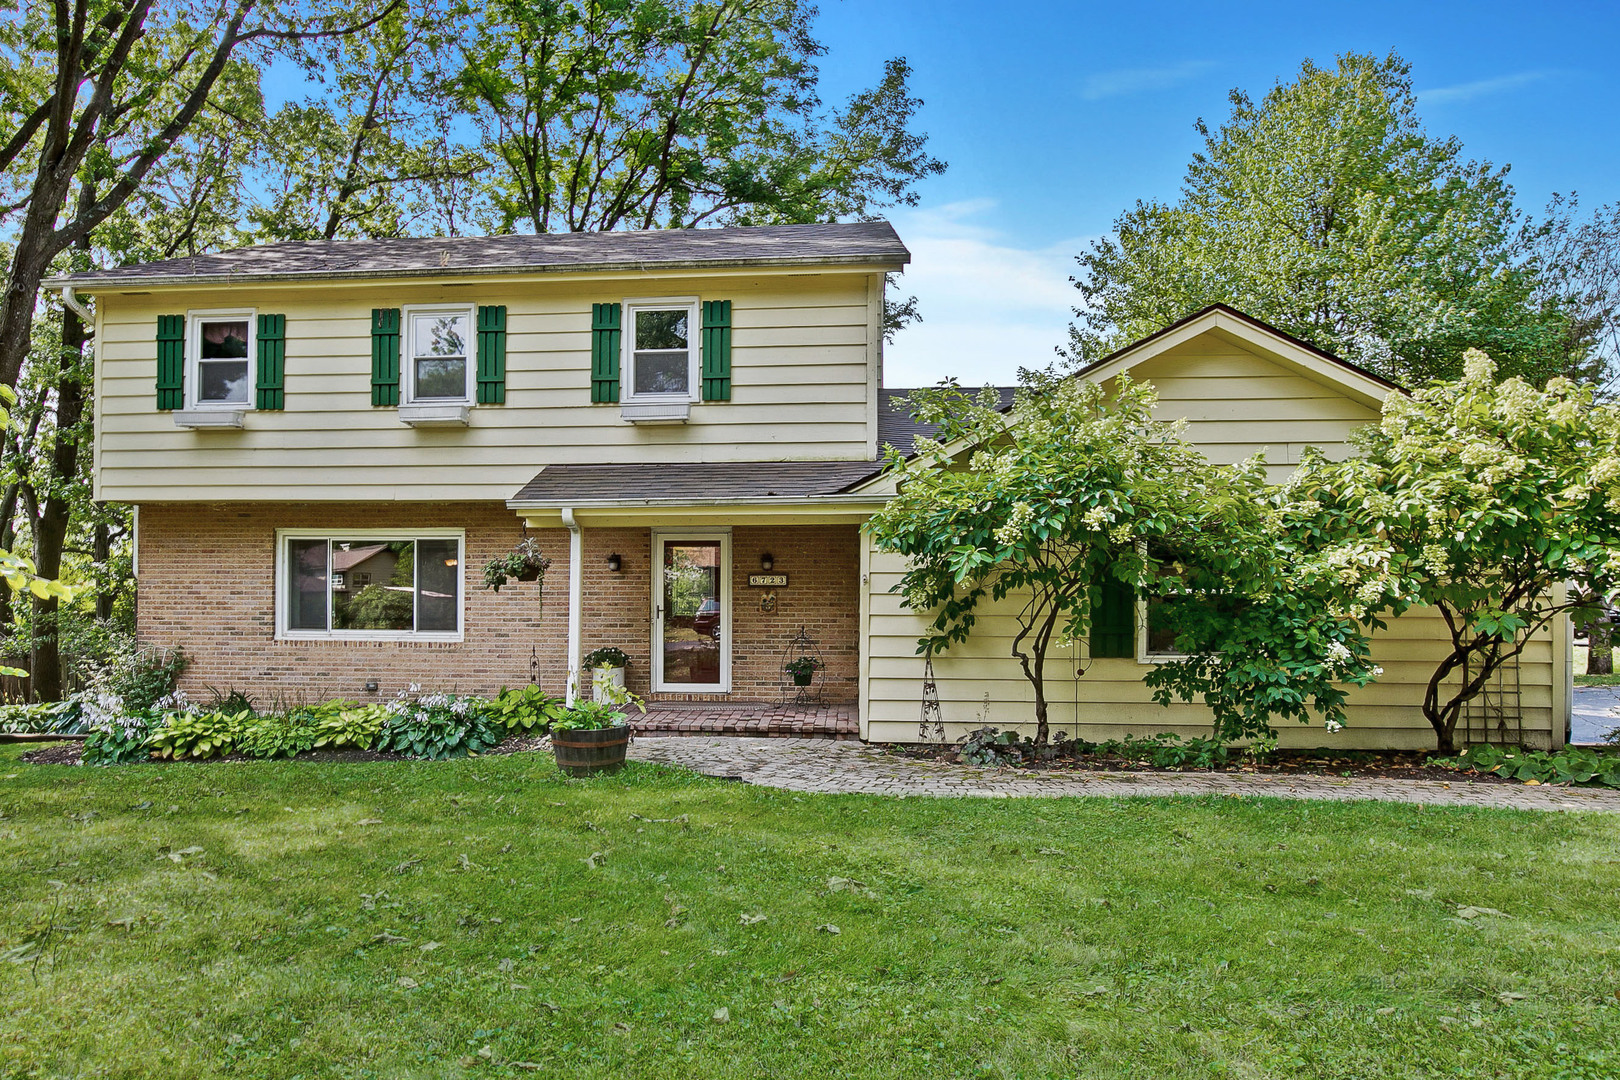 Photo for 6723 Meadow Drive, Crystal Lake, IL 60012 (MLS # 10839710)